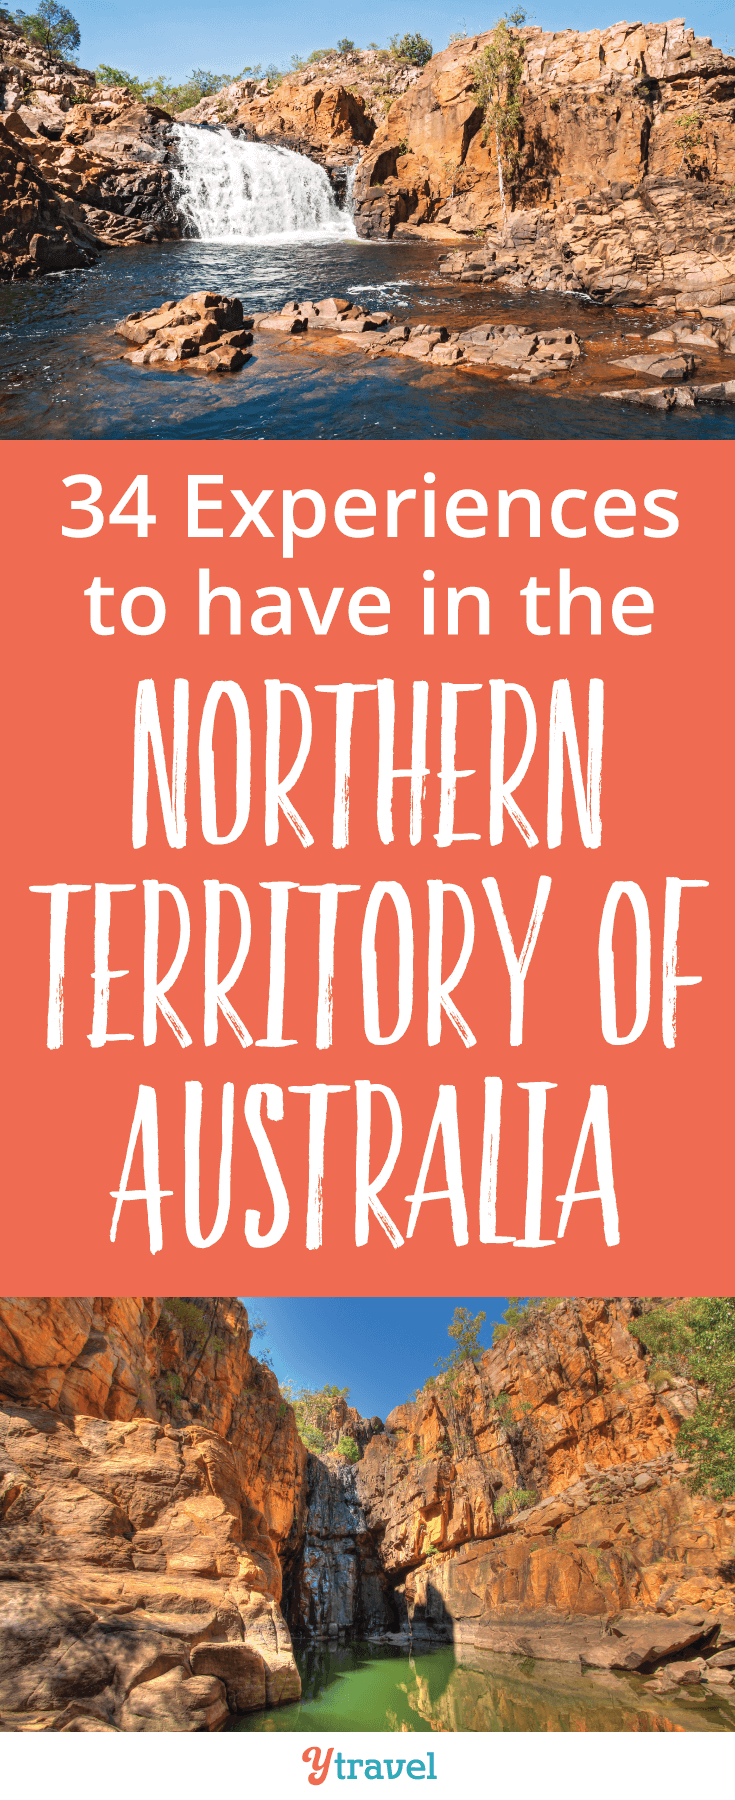 34 fun things to do in the Northern Territory of Australia. Experience the stunning beauty the Outback has to offer.